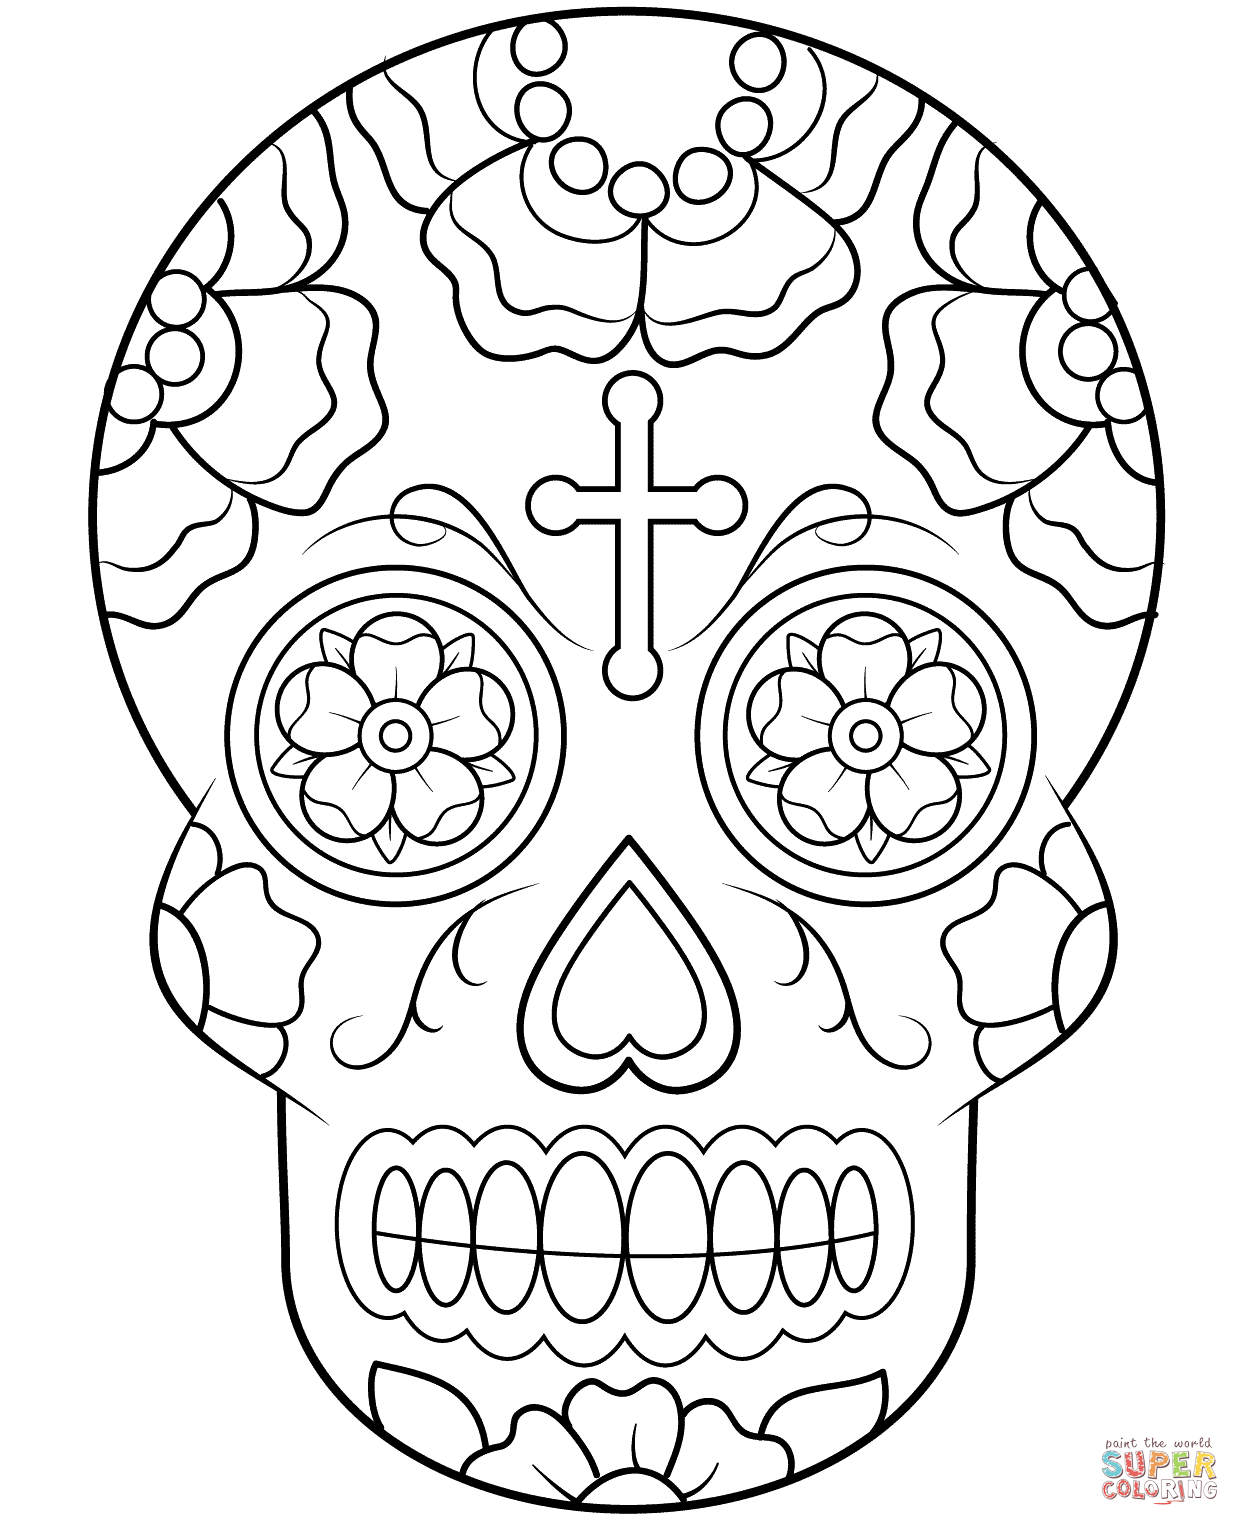 Line Drawing Of Skull at GetDrawings.com | Free for personal use ...